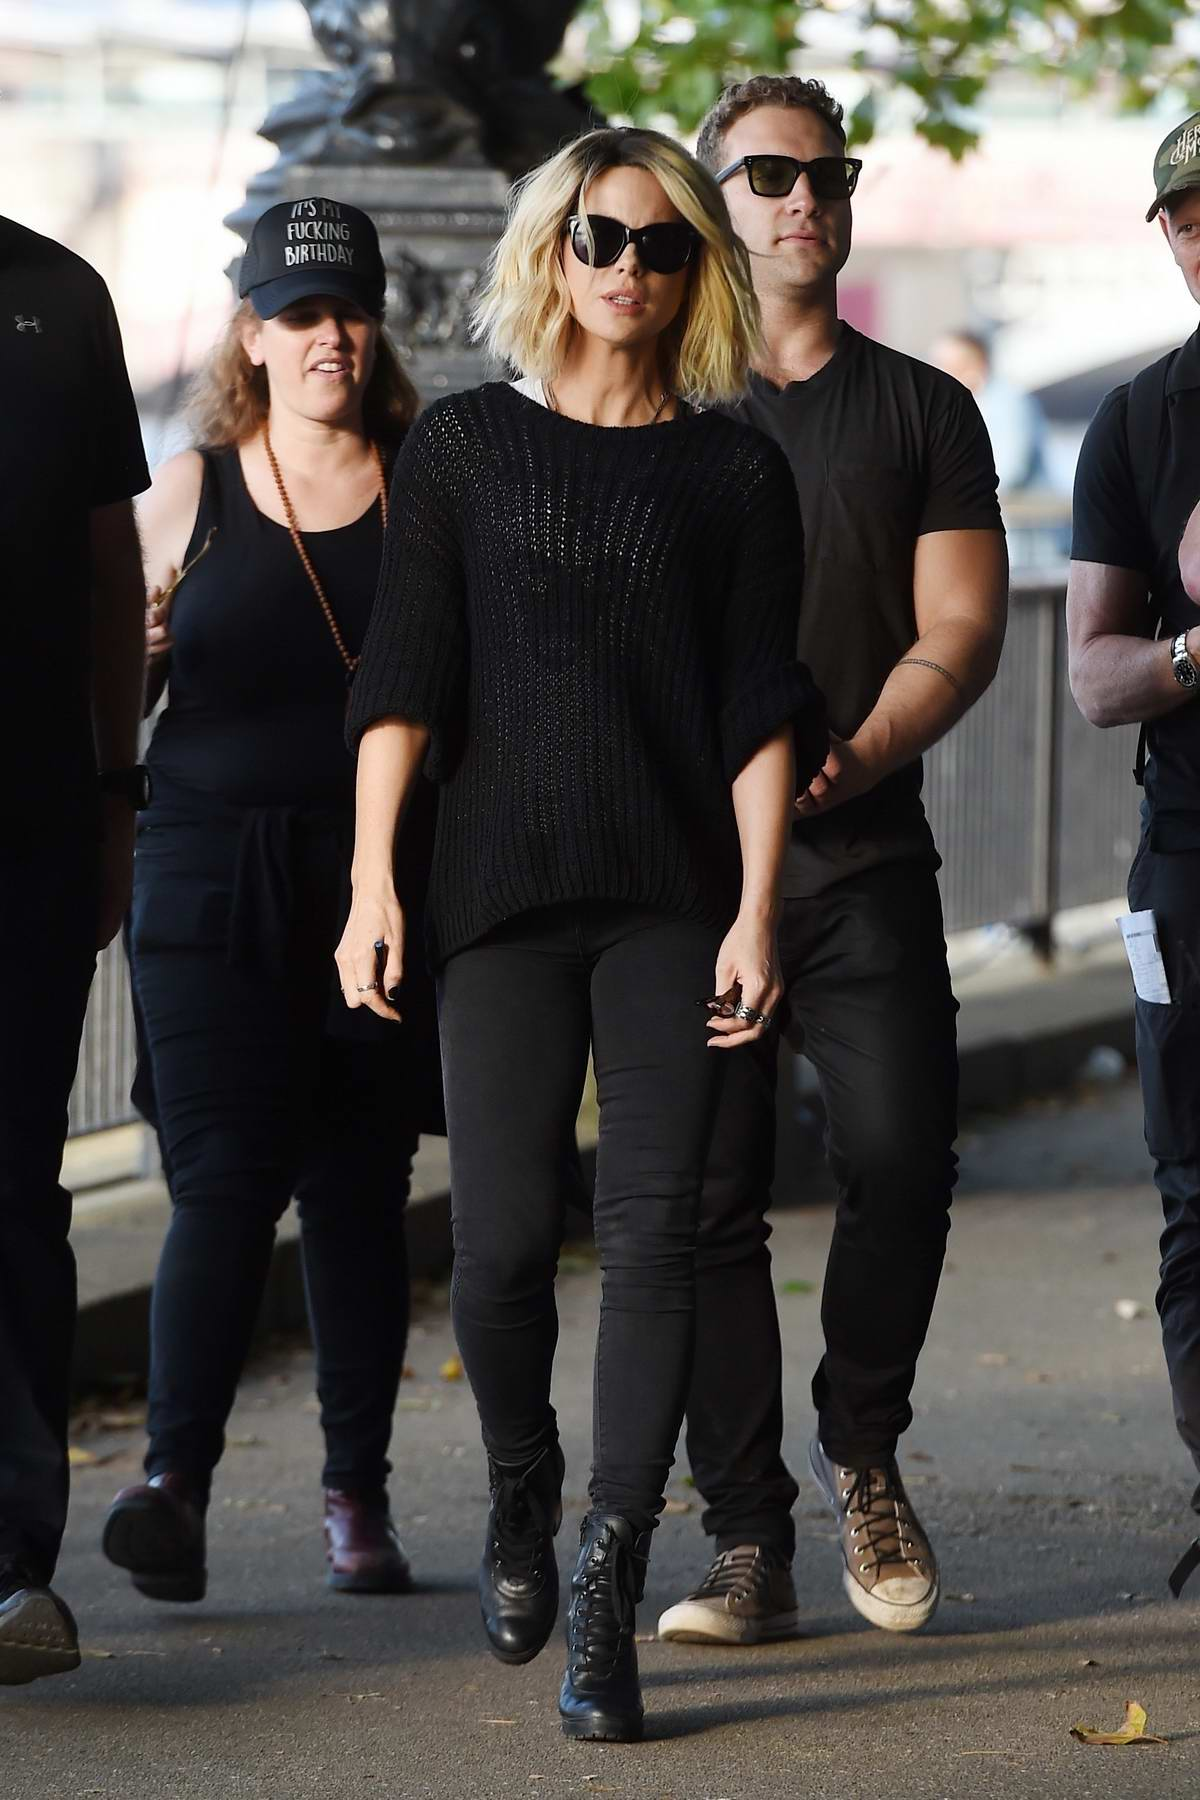 Kate Beckinsale spotted on the set of new film 'Jolt' in London, UK